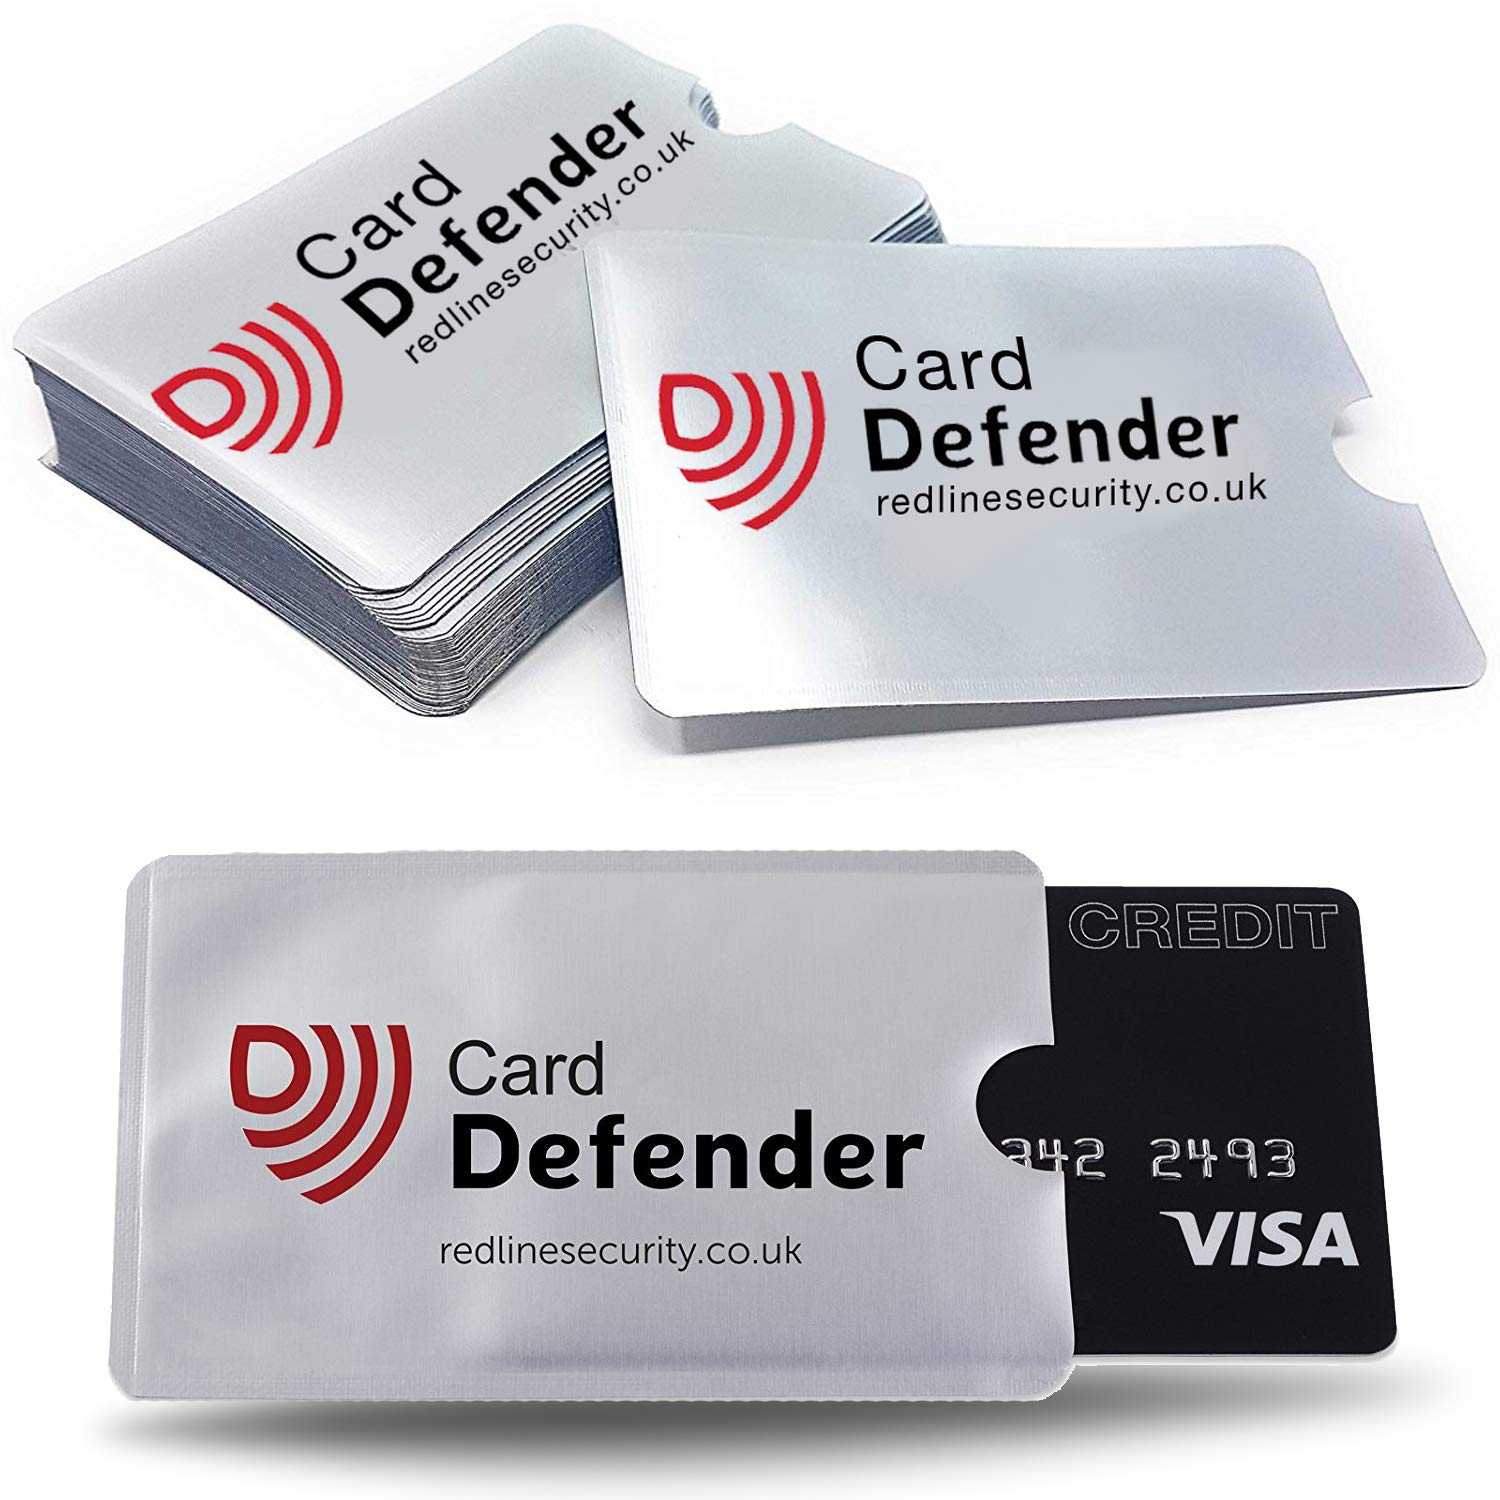 5 x Card Defenders - Police Preferred Specification RFID Blocking Sleeves for Protecting Your Contactless Card - Pack of 5 Solon Security